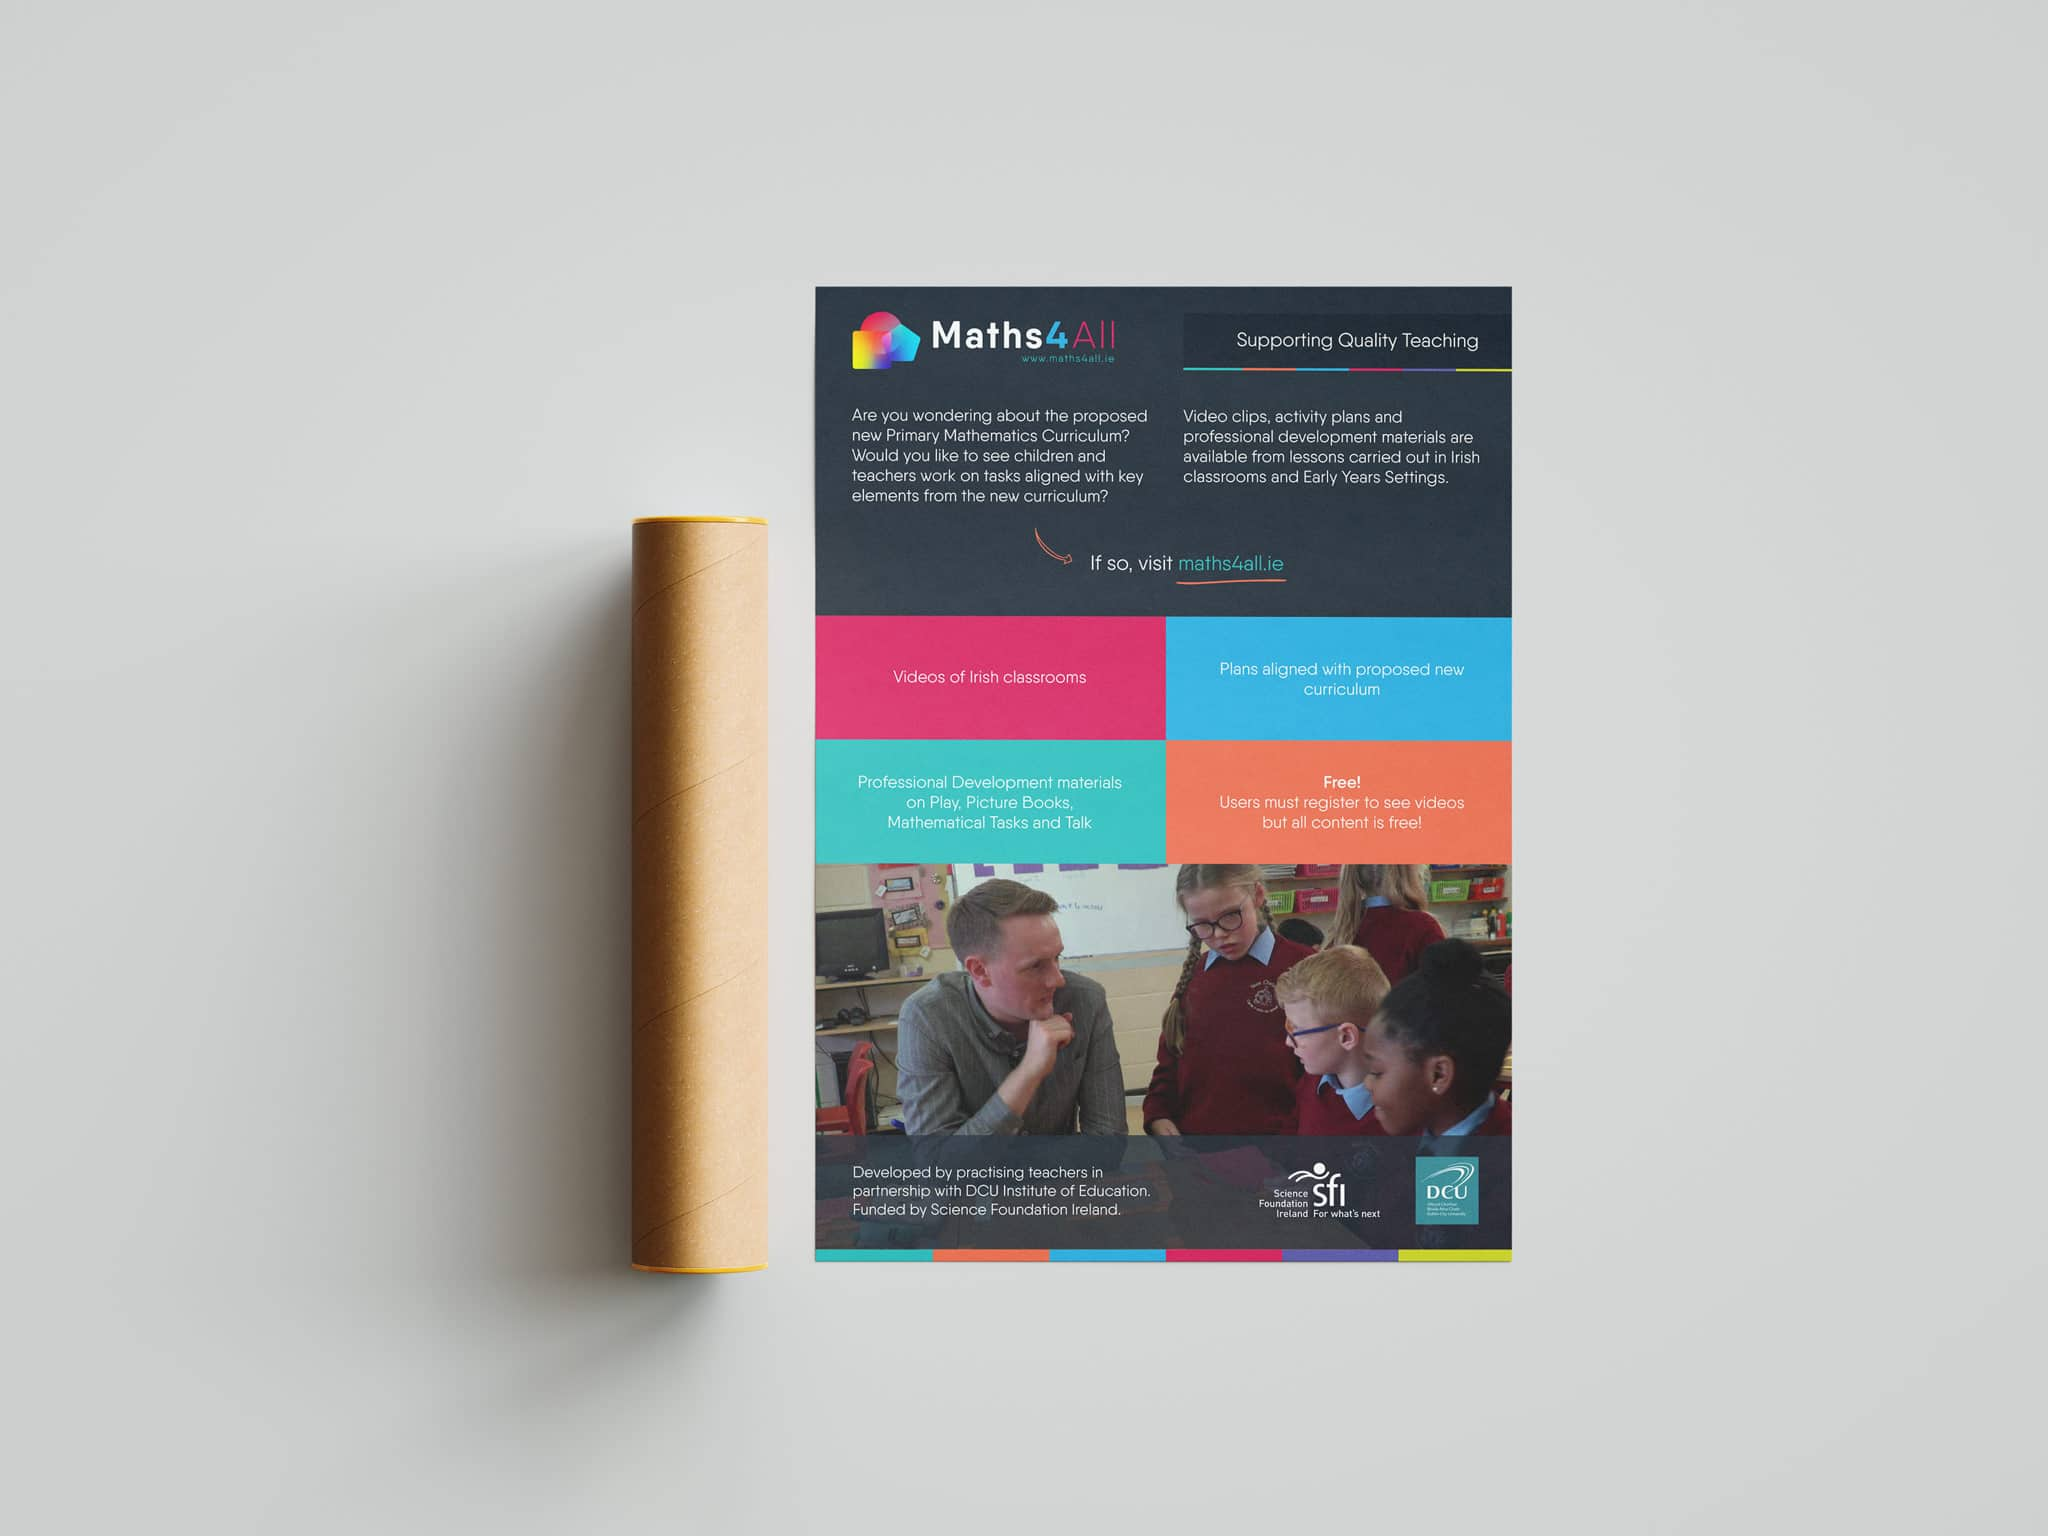 Maths4all Poster Mockup